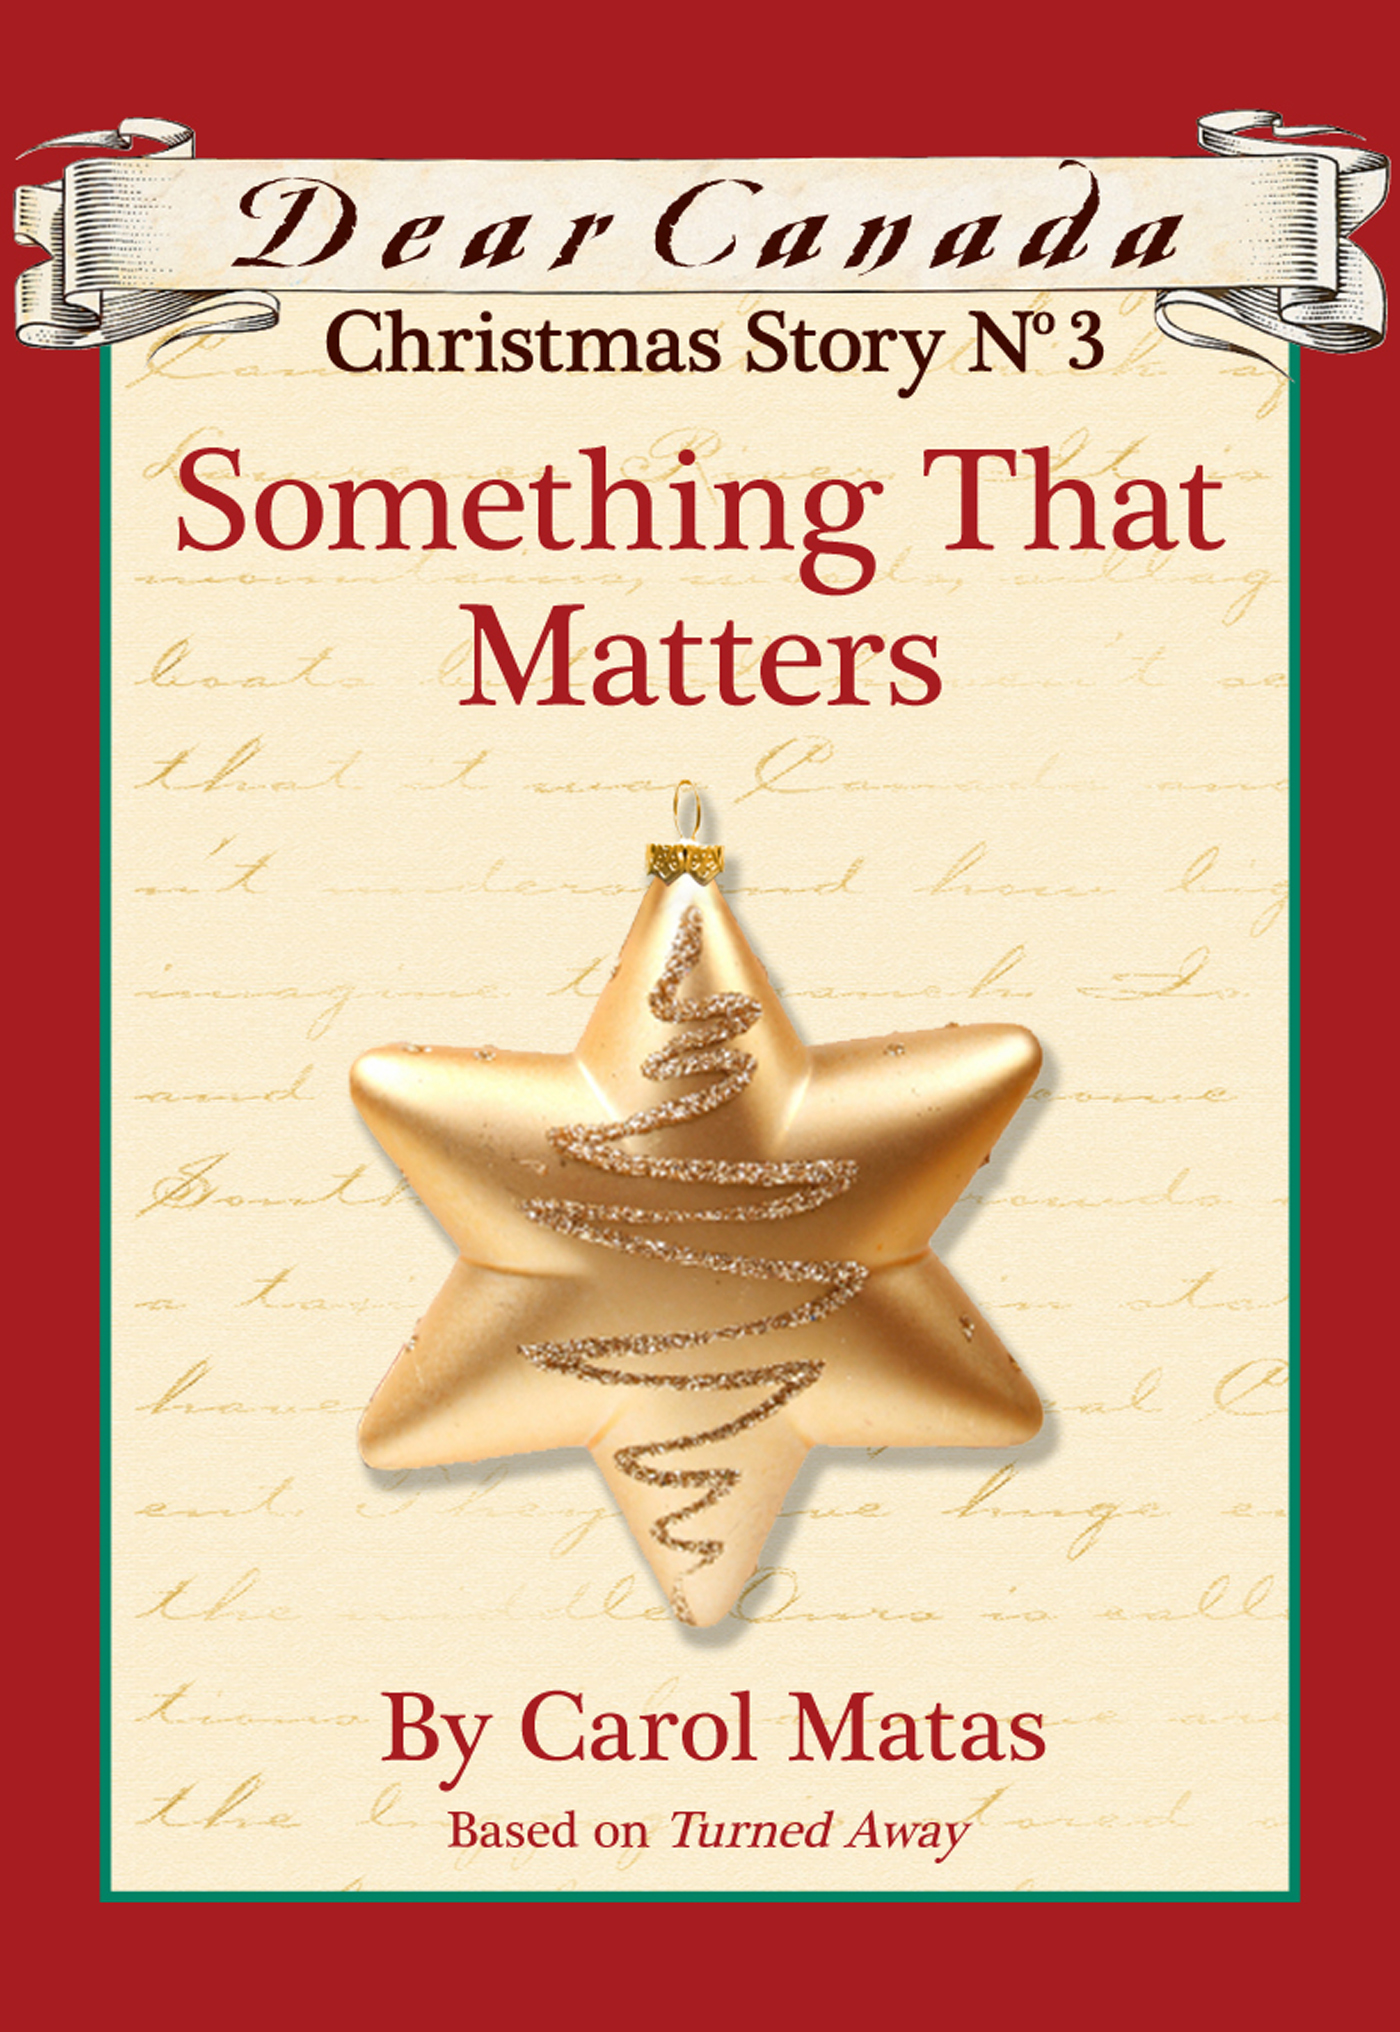 Dear Canada Christmas Story No. 3: Something That Matters By: Carol Matas